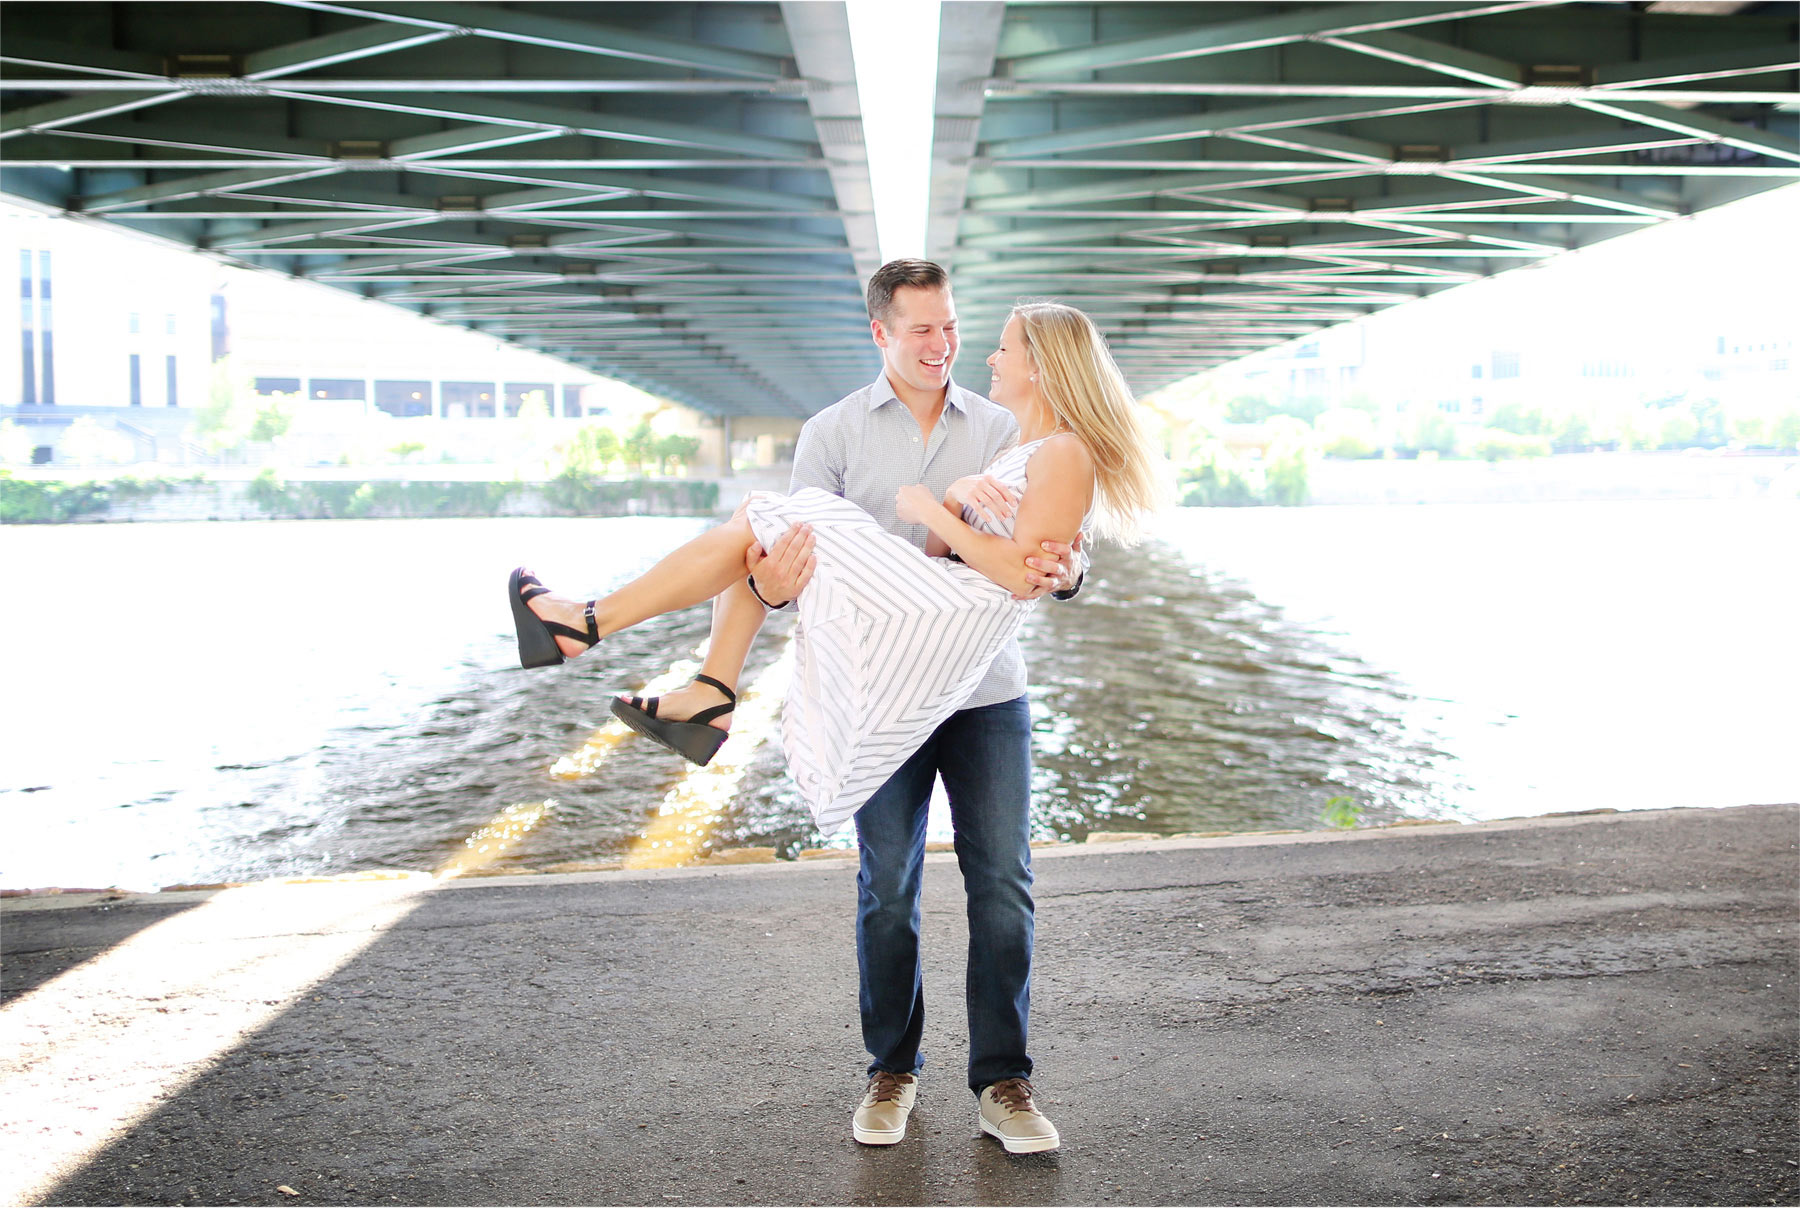 02-Minneapolis-Minnesota-Engagement-Photographer-by-Andrew-Vick-Photography-Summer-Mississippi-River-Hennepin-Avenue-Bridge-Lift-Laughter-Tina-and-Kevin.jpg